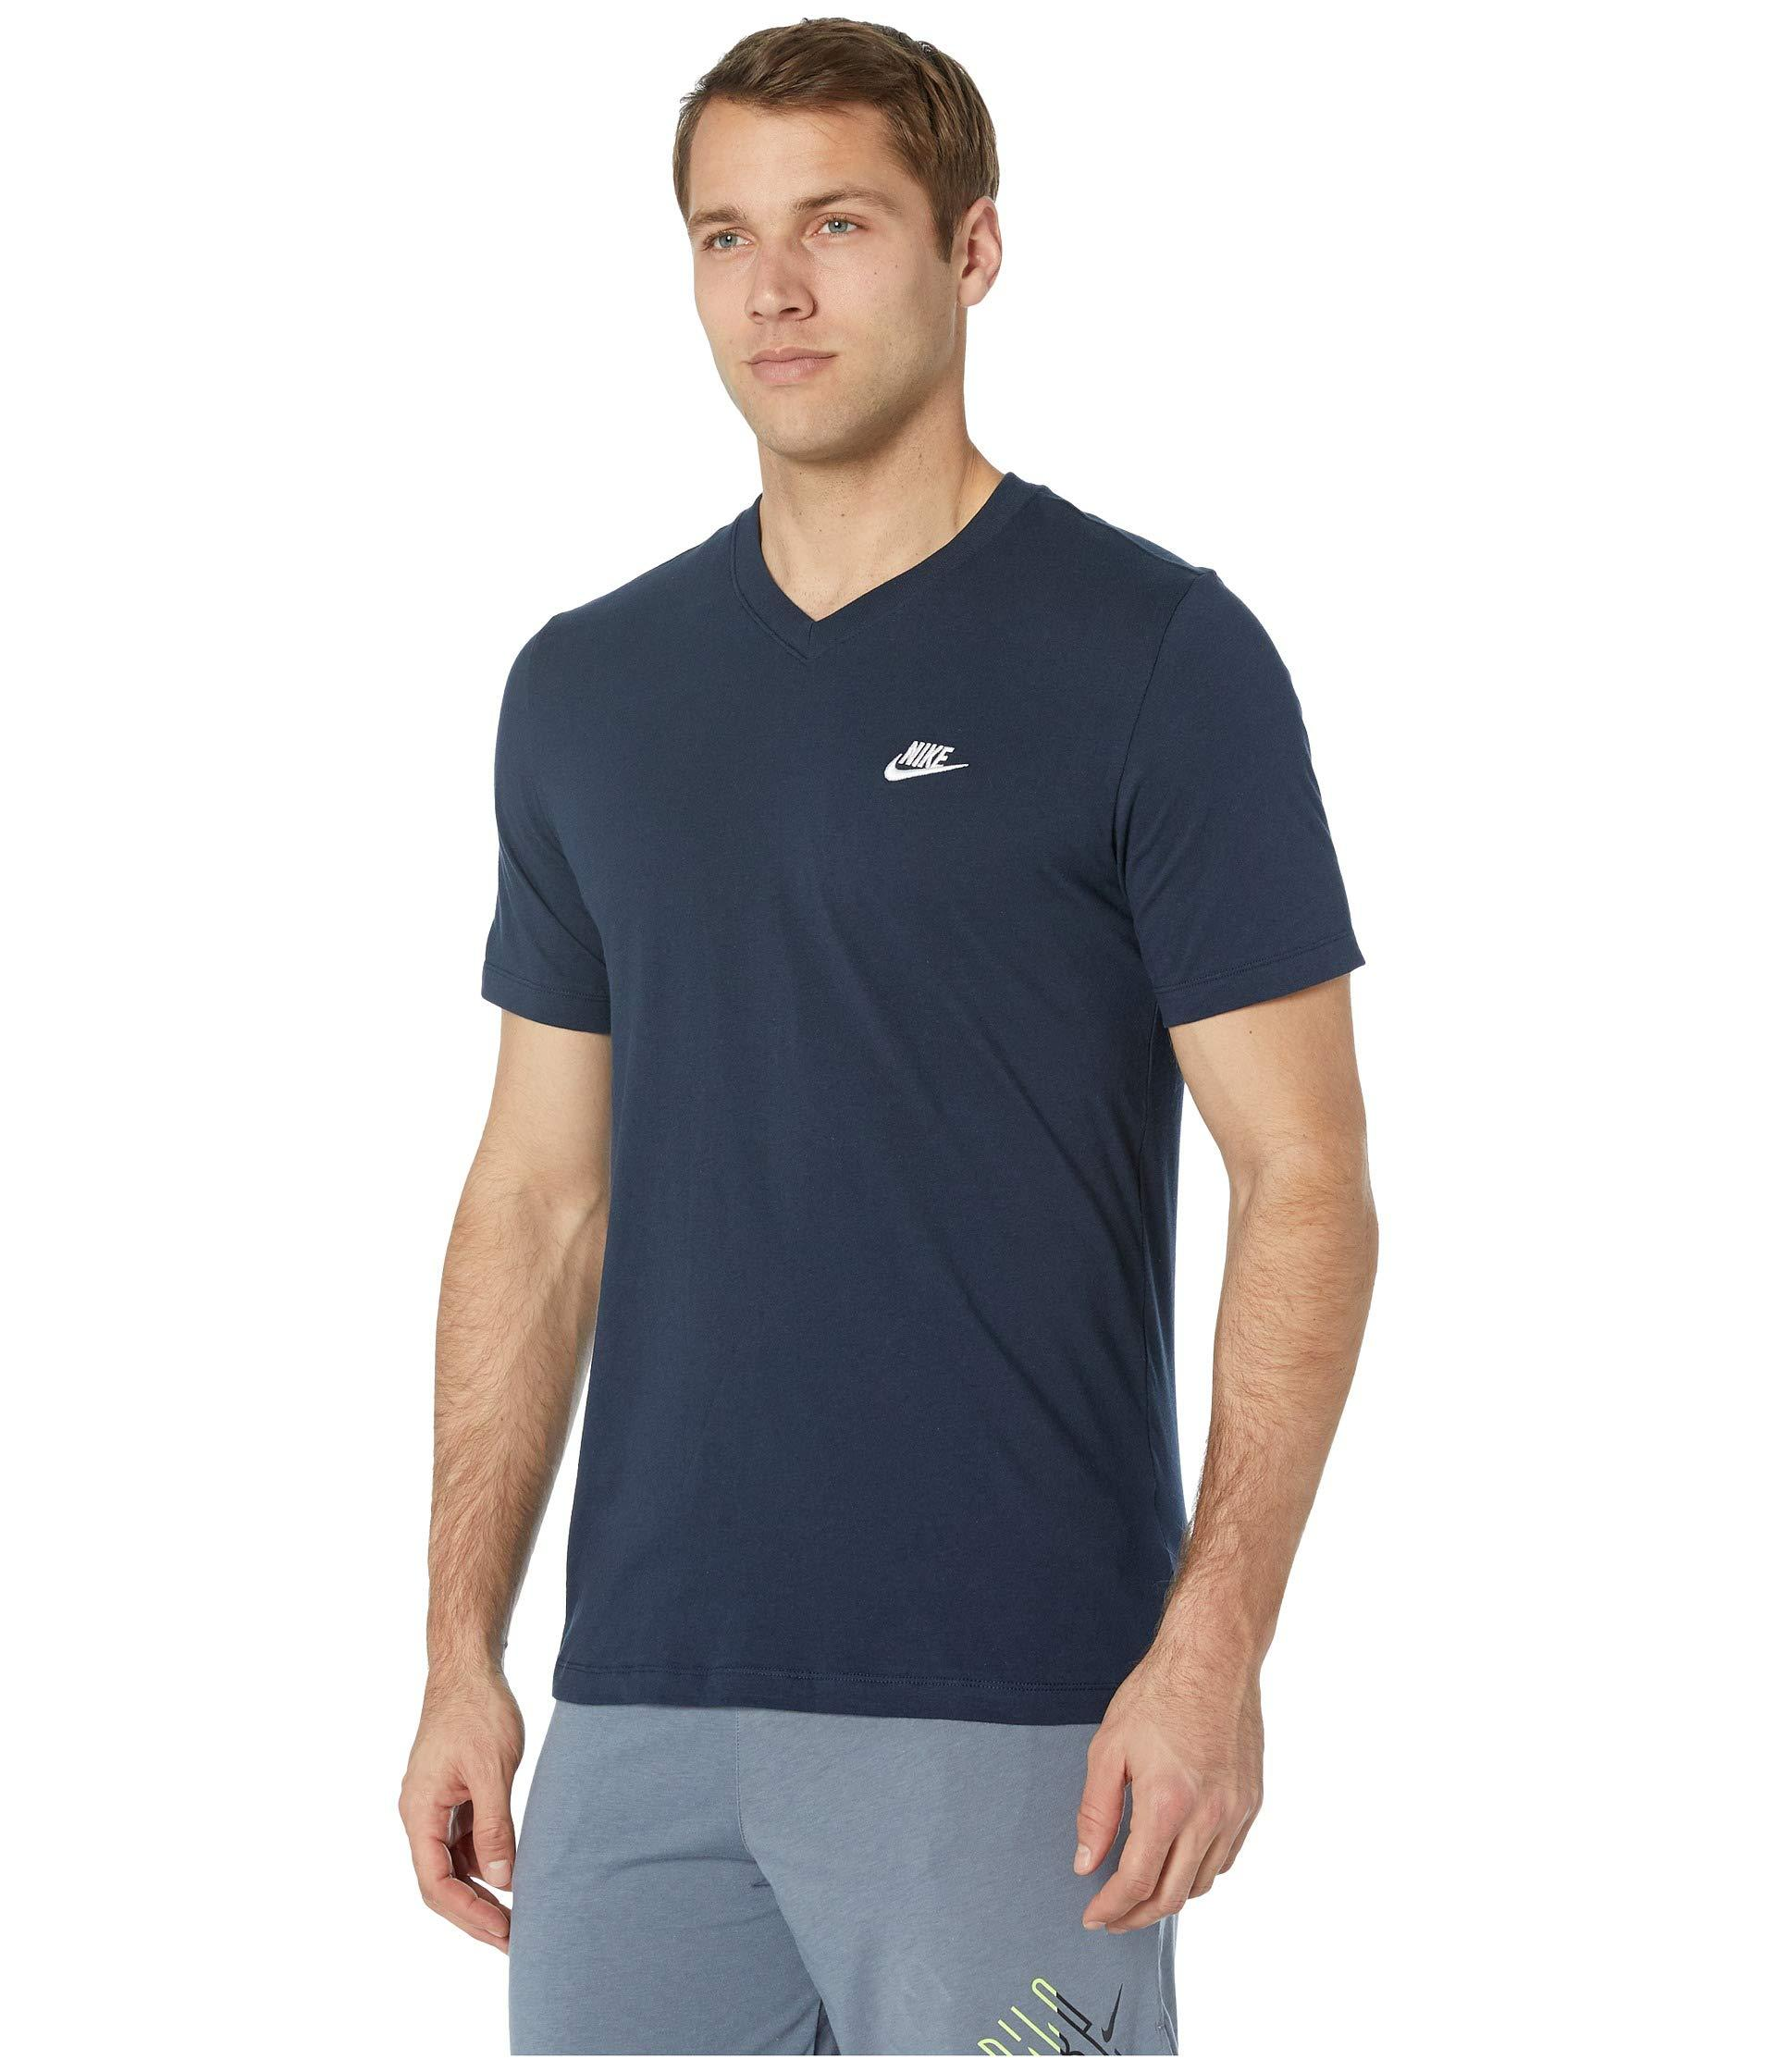 accfe9d390a4 Lyst - Nike Nsw Embroidered Futura V-neck Tee (black white) Men s Short  Sleeve Pullover in Blue for Men